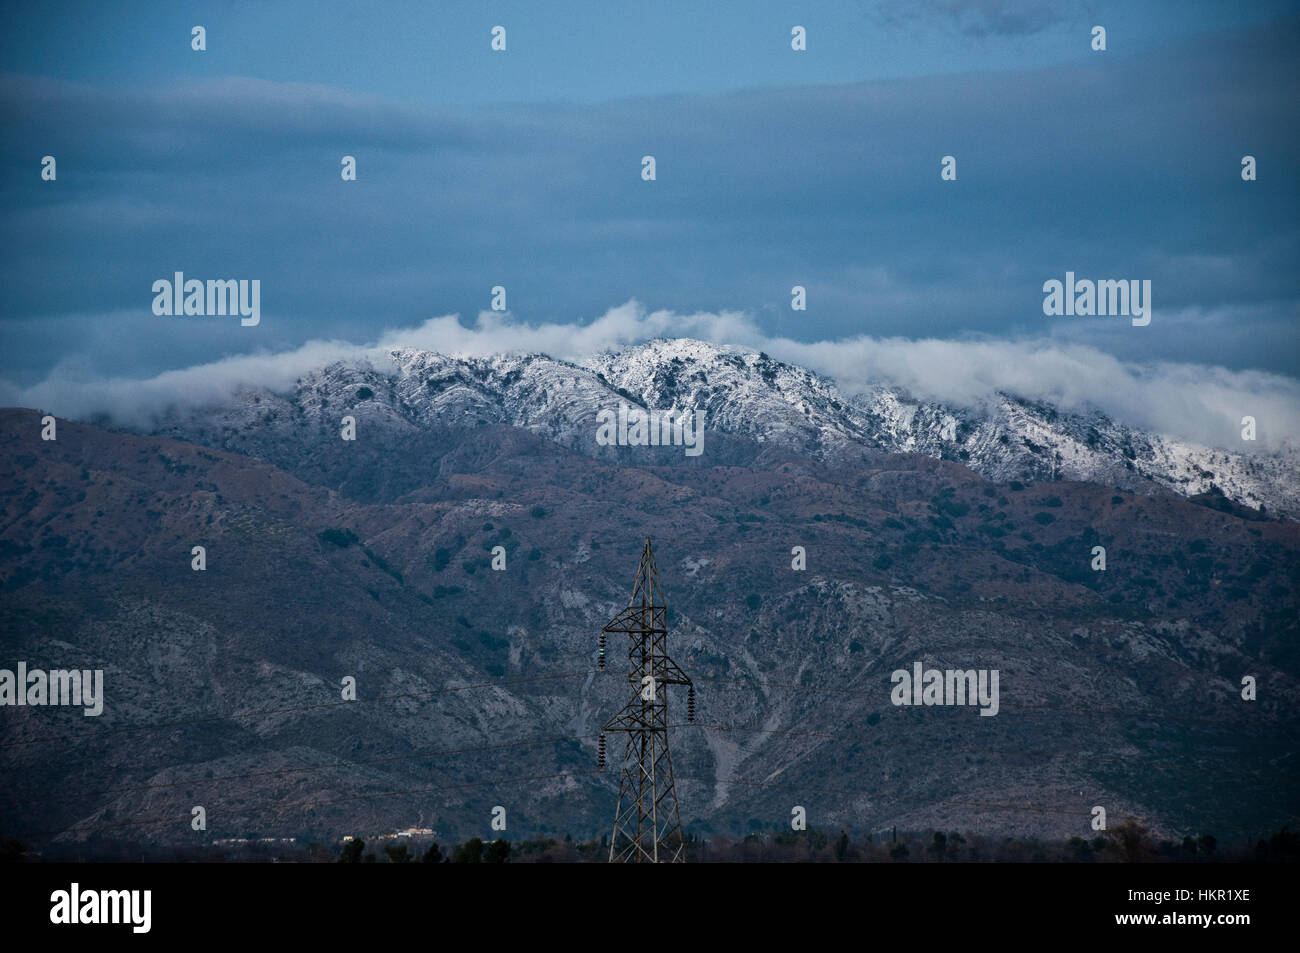 Snowfall on top the cloudy mountain - Stock Image